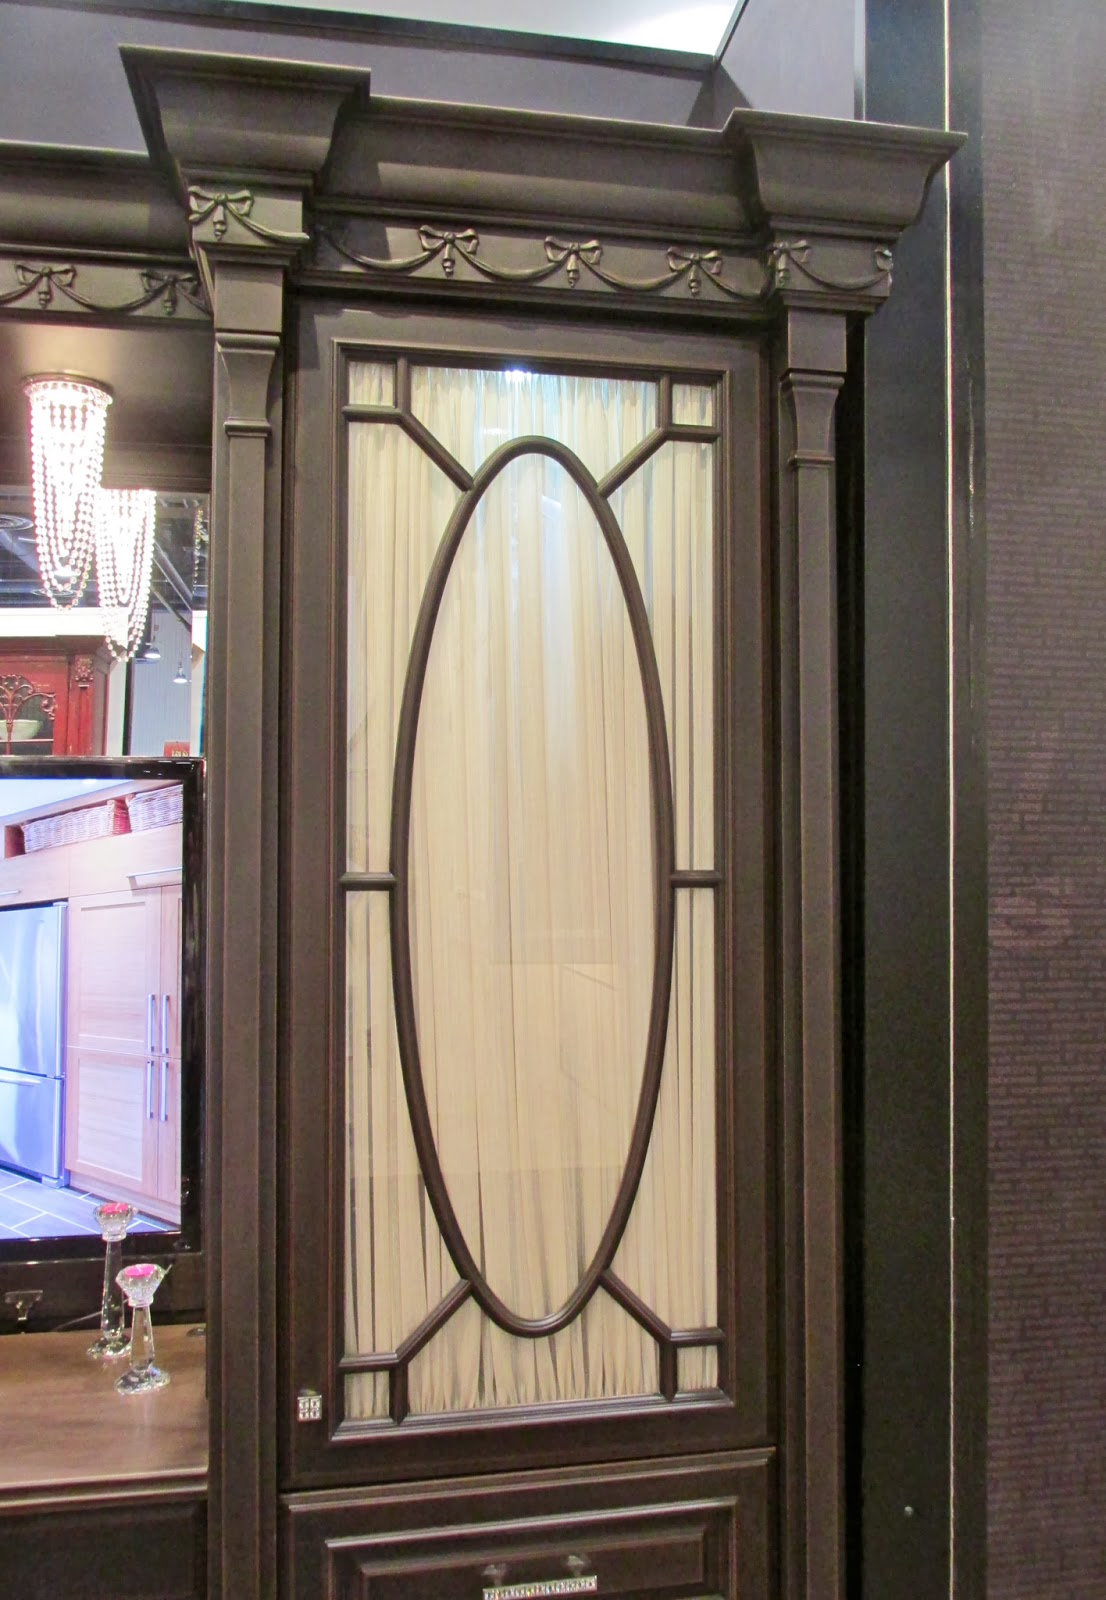 Another glass door. The grey-green color lends a modern feel to this traditional design.